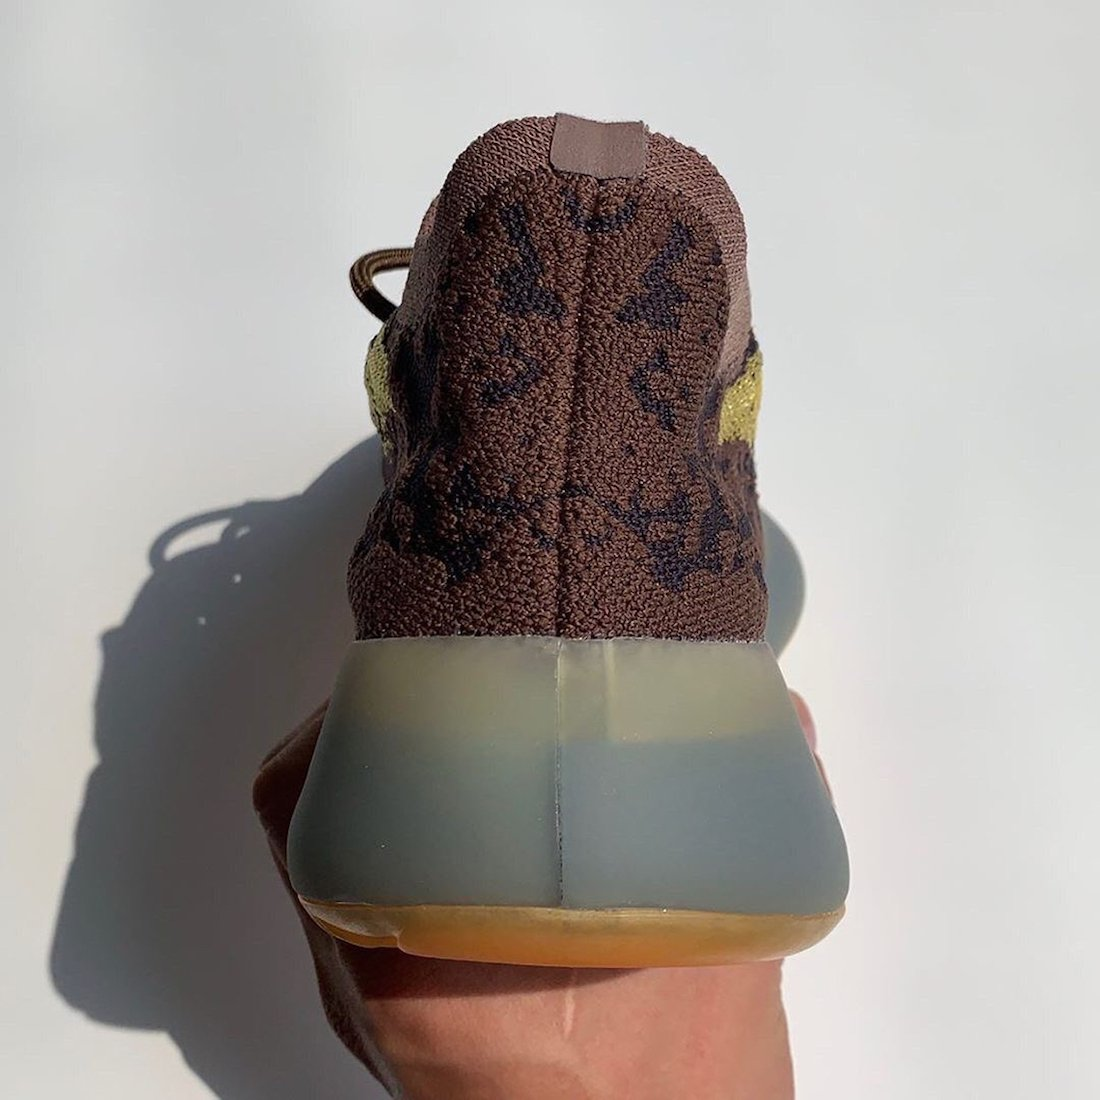 LMNTE adidas Yeezy Boost 380 Release Date